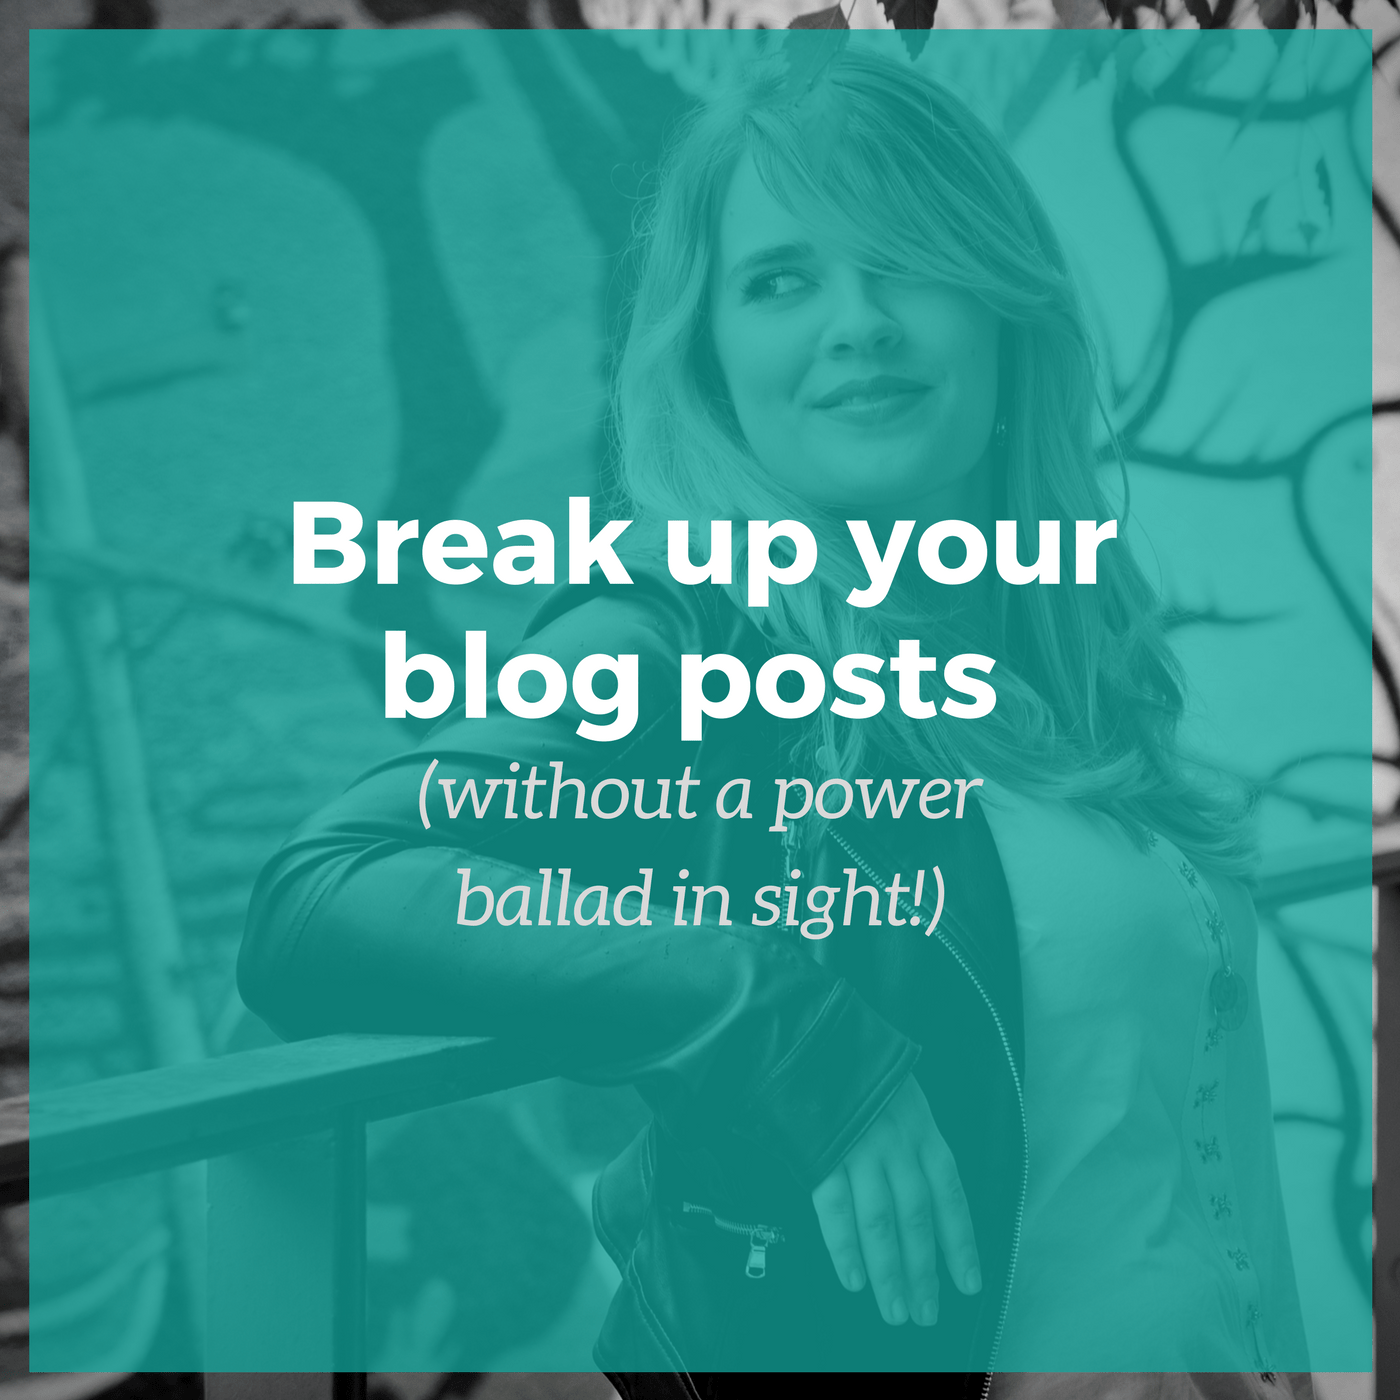 Break up your blog posts